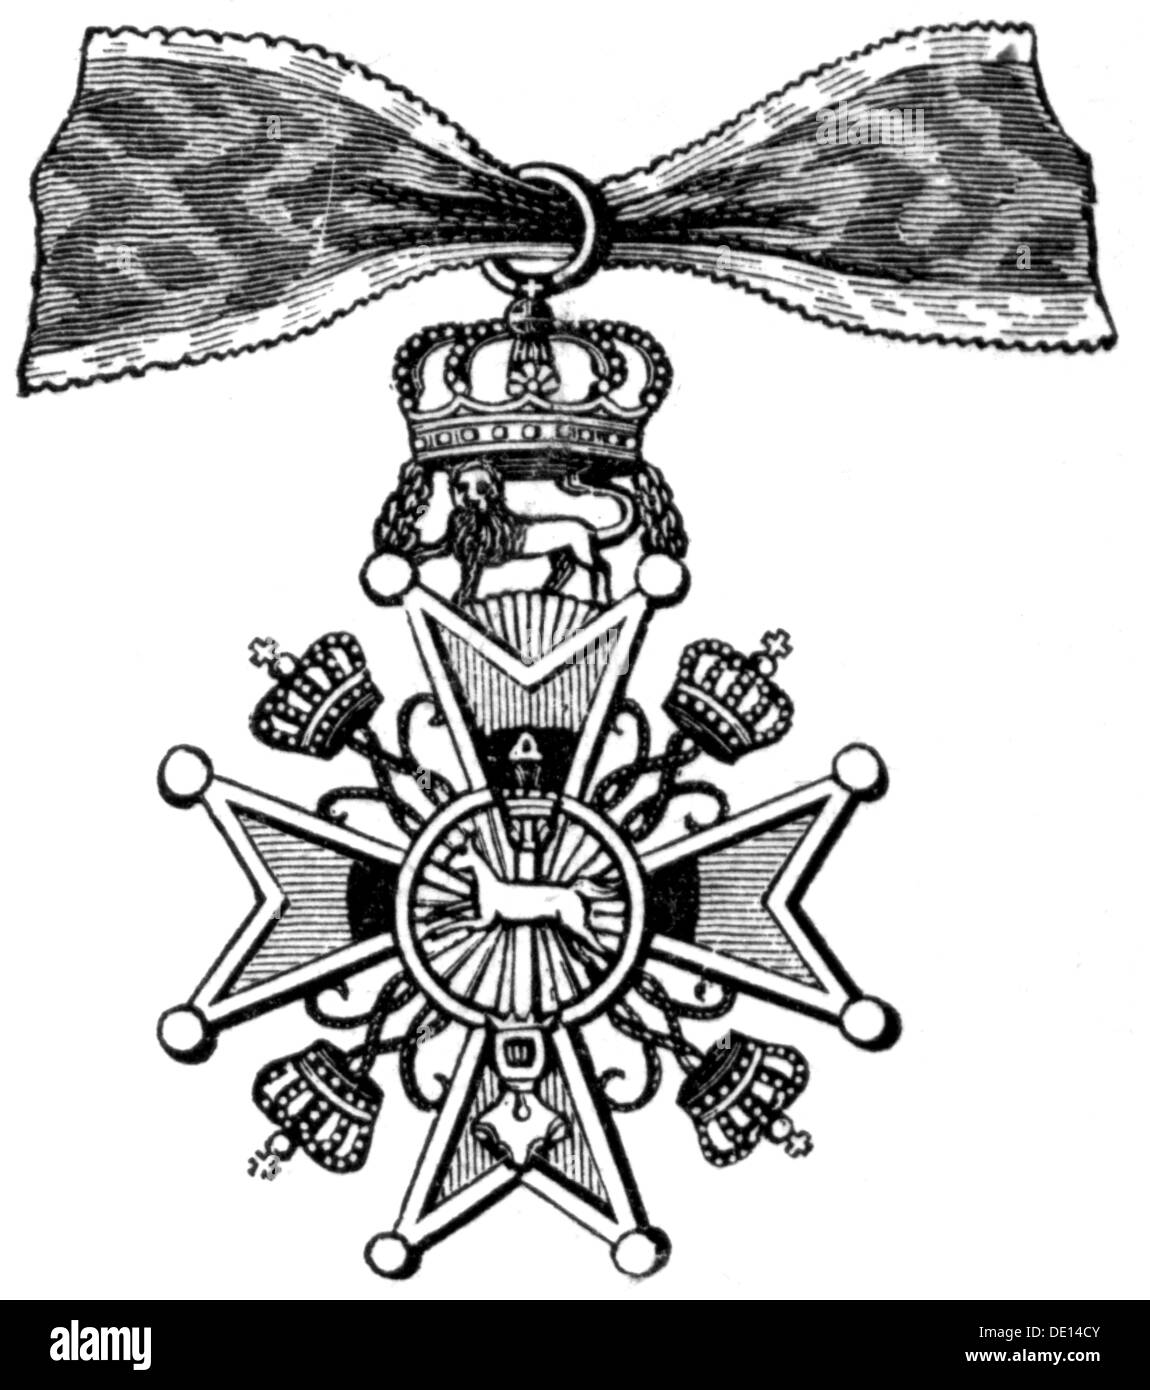 medals and decorations, Germany, Brunswick, Order of Henry the Lion, founded 25.4.1834 by Duke William of Brunswick, badge, wood engraving, 2nd half 19th century, house order, House of Welf, Welfs, military order of merit, Maltese cross, cross, crosses, ribbon, ribbons, military order, orders of merit, Order of Merit, military, armed forces, Duchy of Brunswick, medal, decoration, medals, decorations, lion, lions, historic, historical, Additional-Rights-Clearences-NA - Stock Image